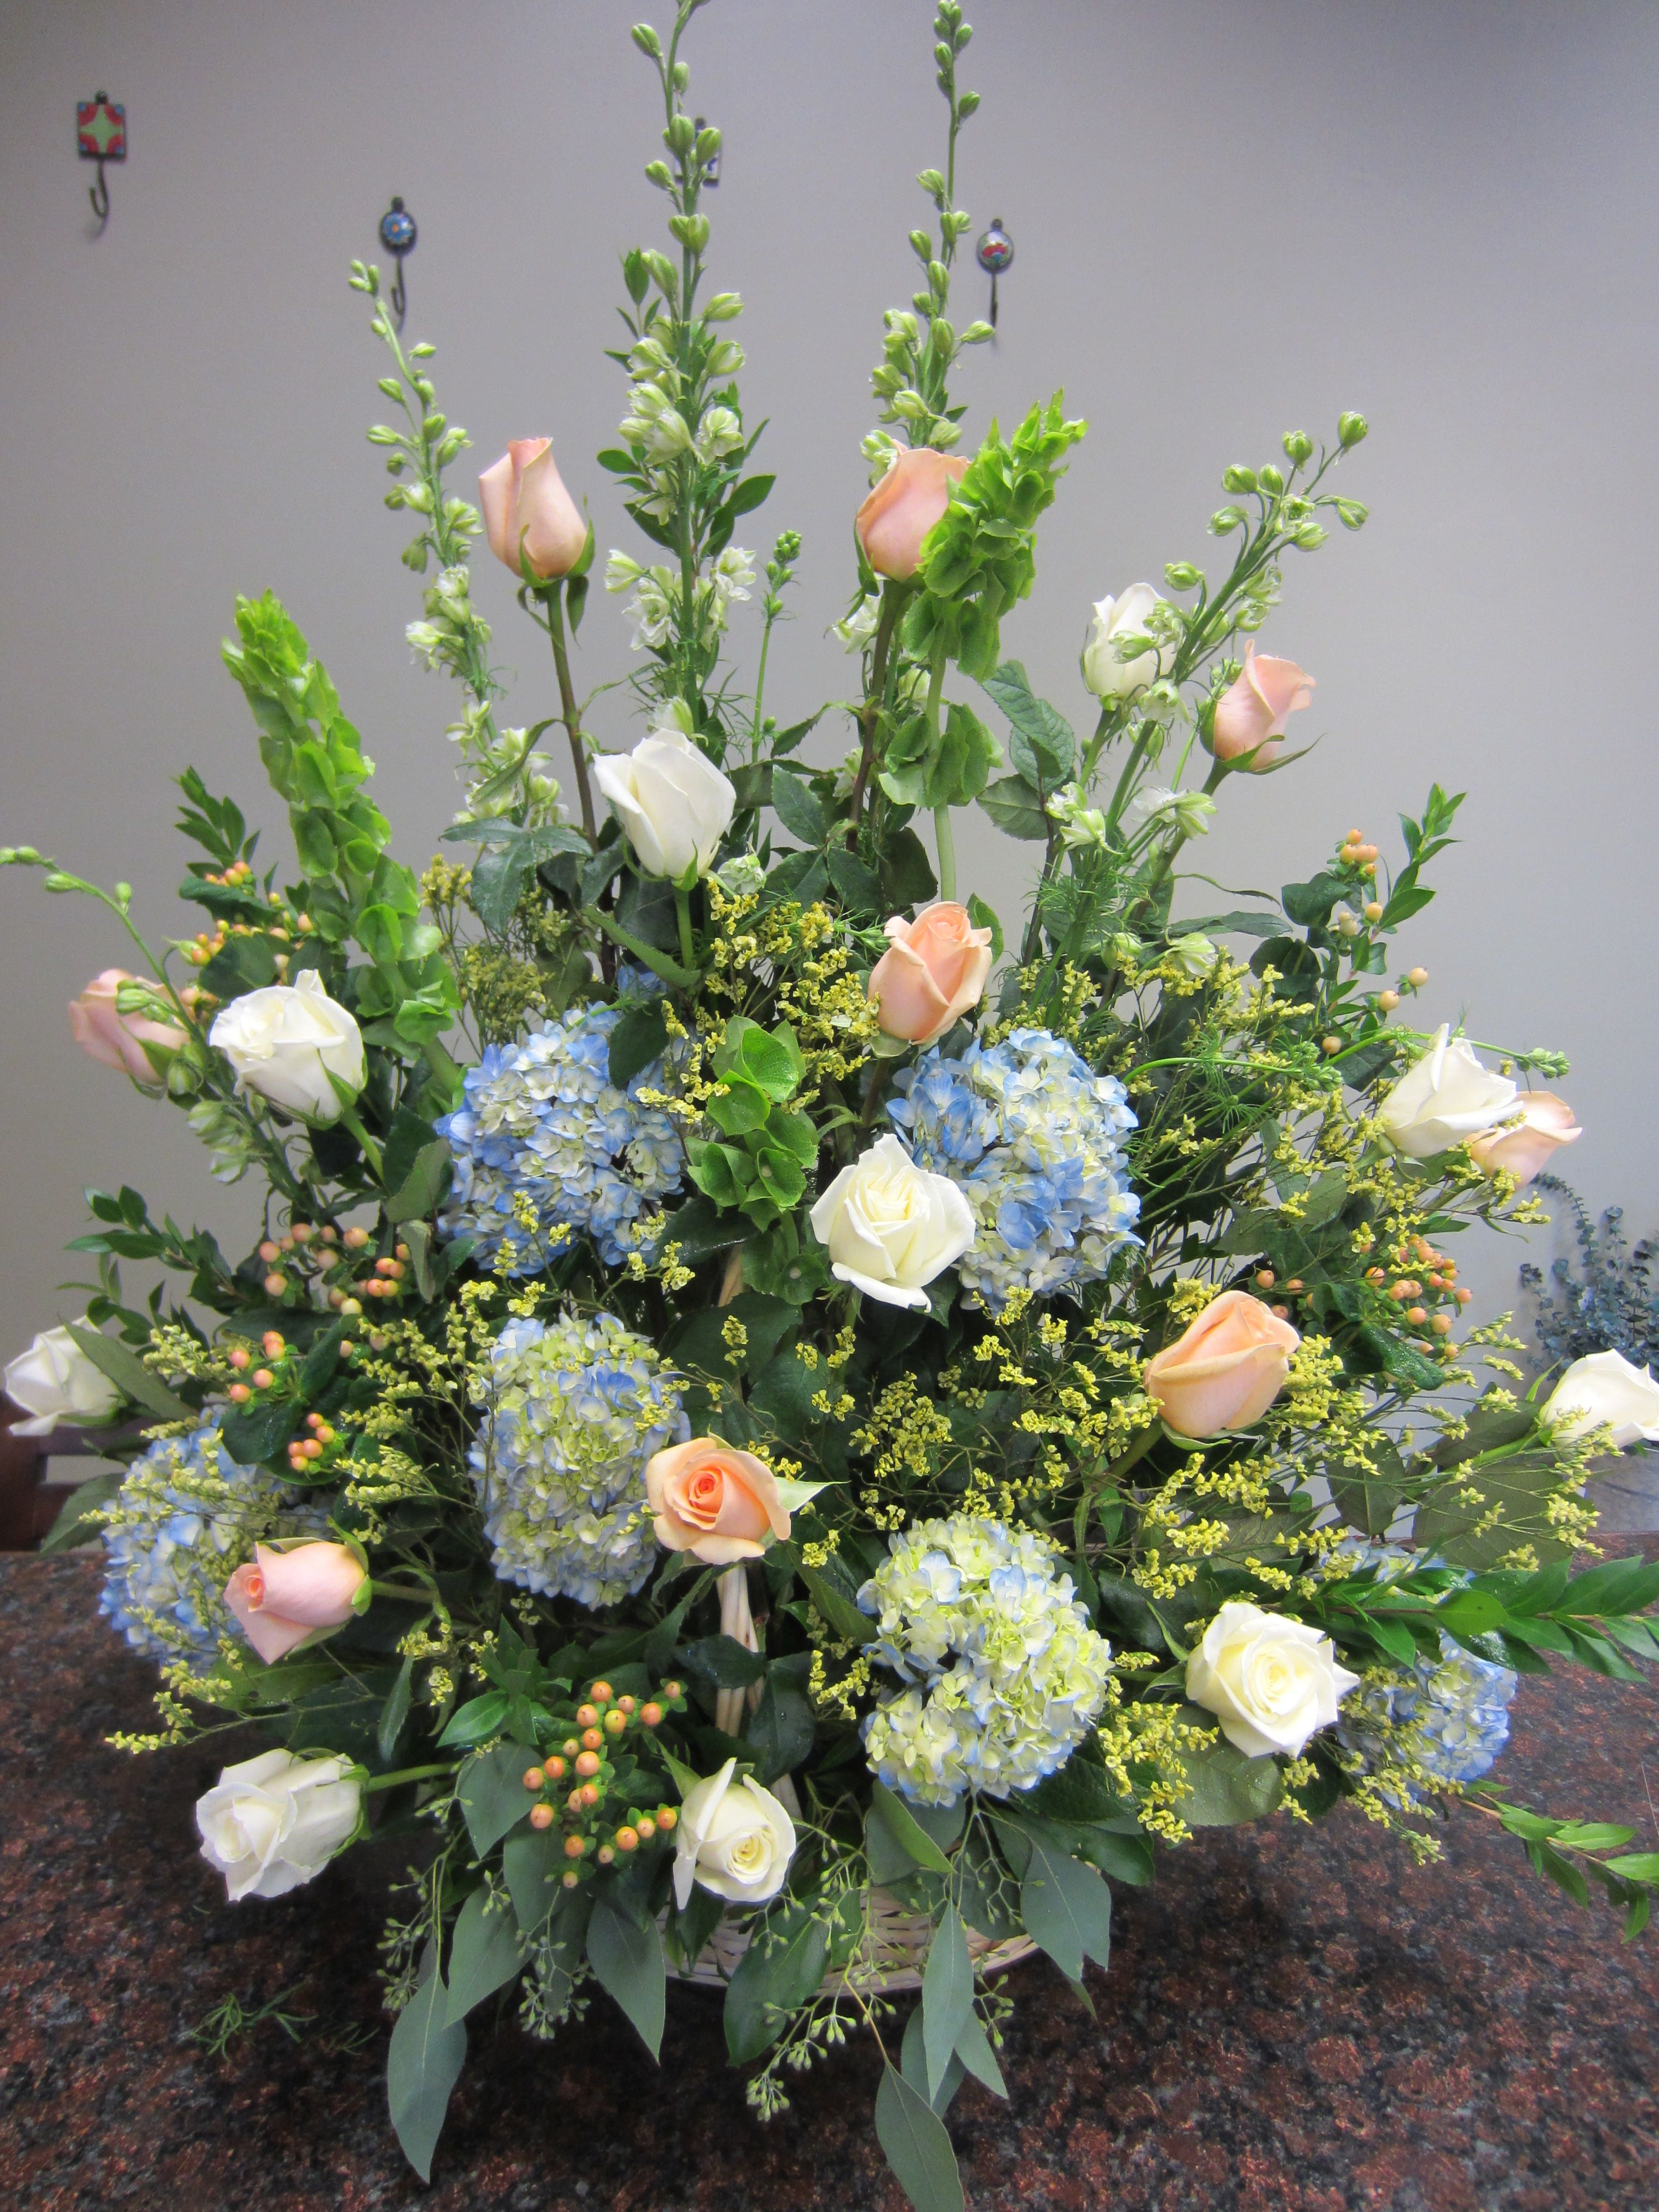 Peach blue and white sympathy basket by concord flower shop peach blue and white sympathy basket by concord flower shop izmirmasajfo Images